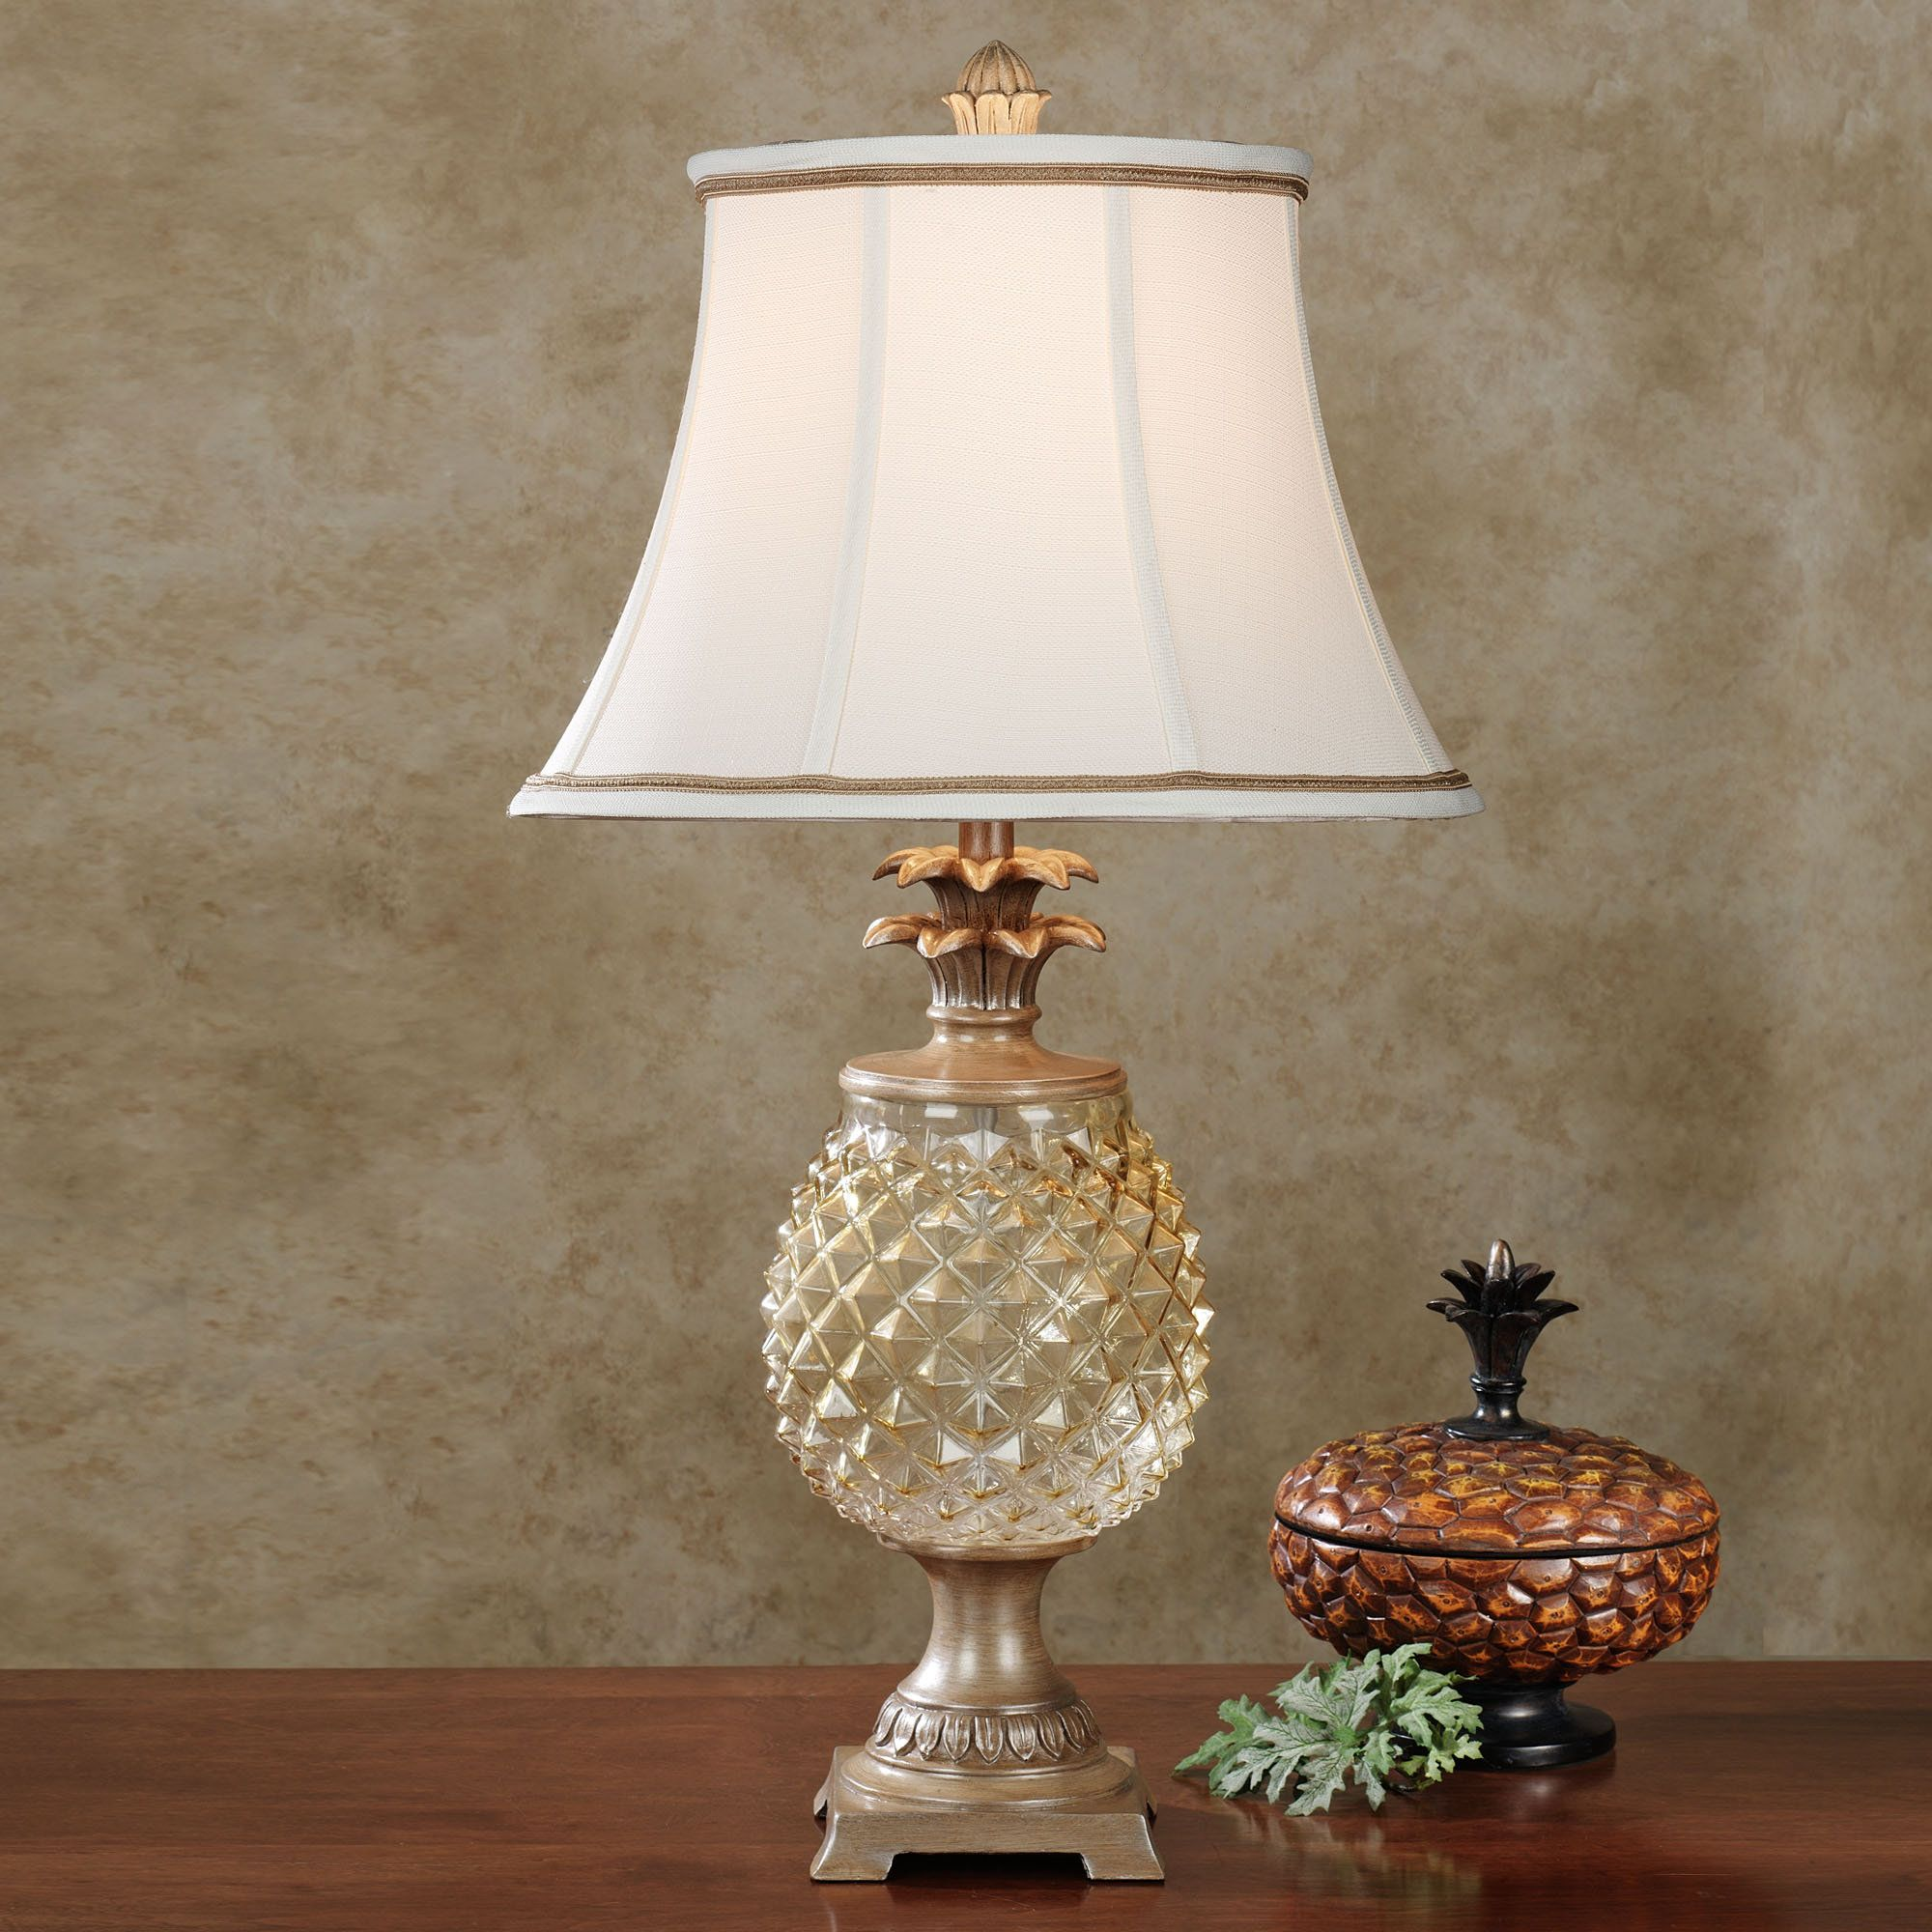 fils sweet table charles by pineapple unnamed corn et donzella single lamp